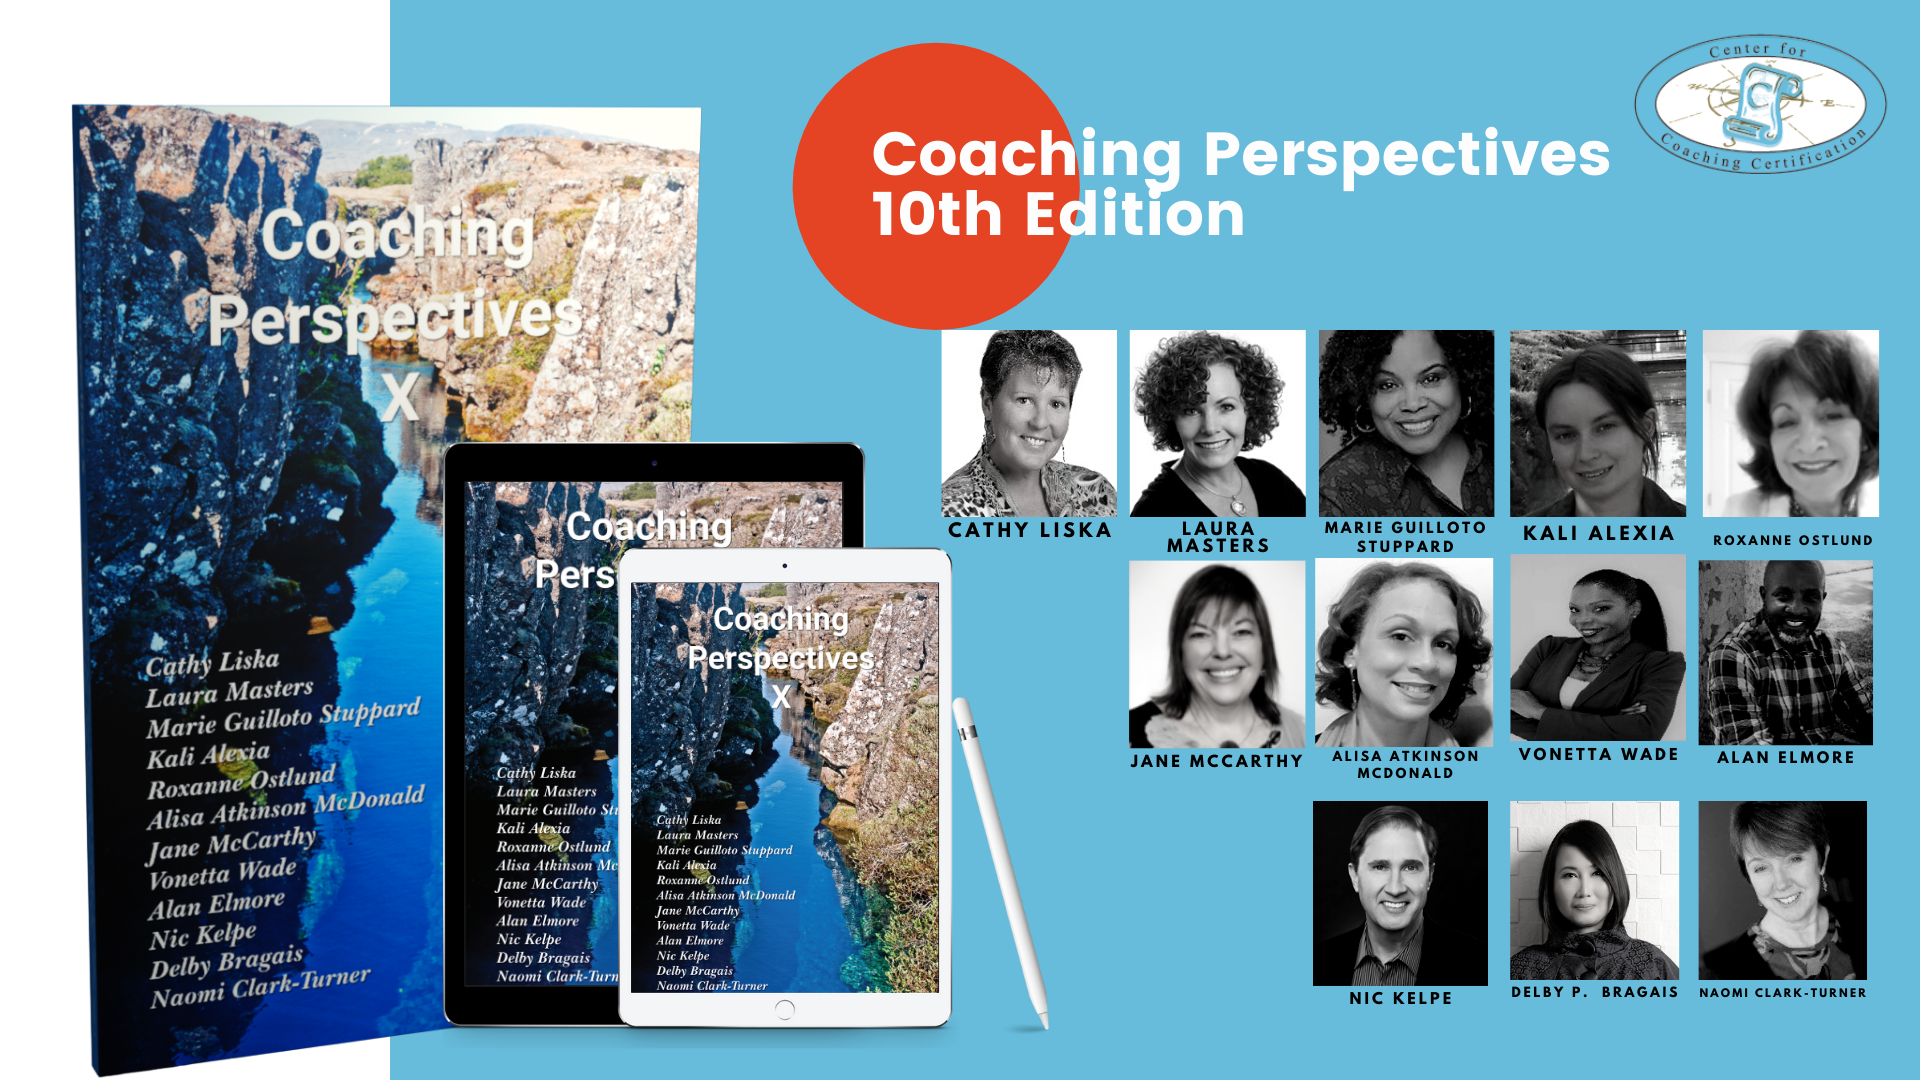 CCC COACHING PERSPECTIVES